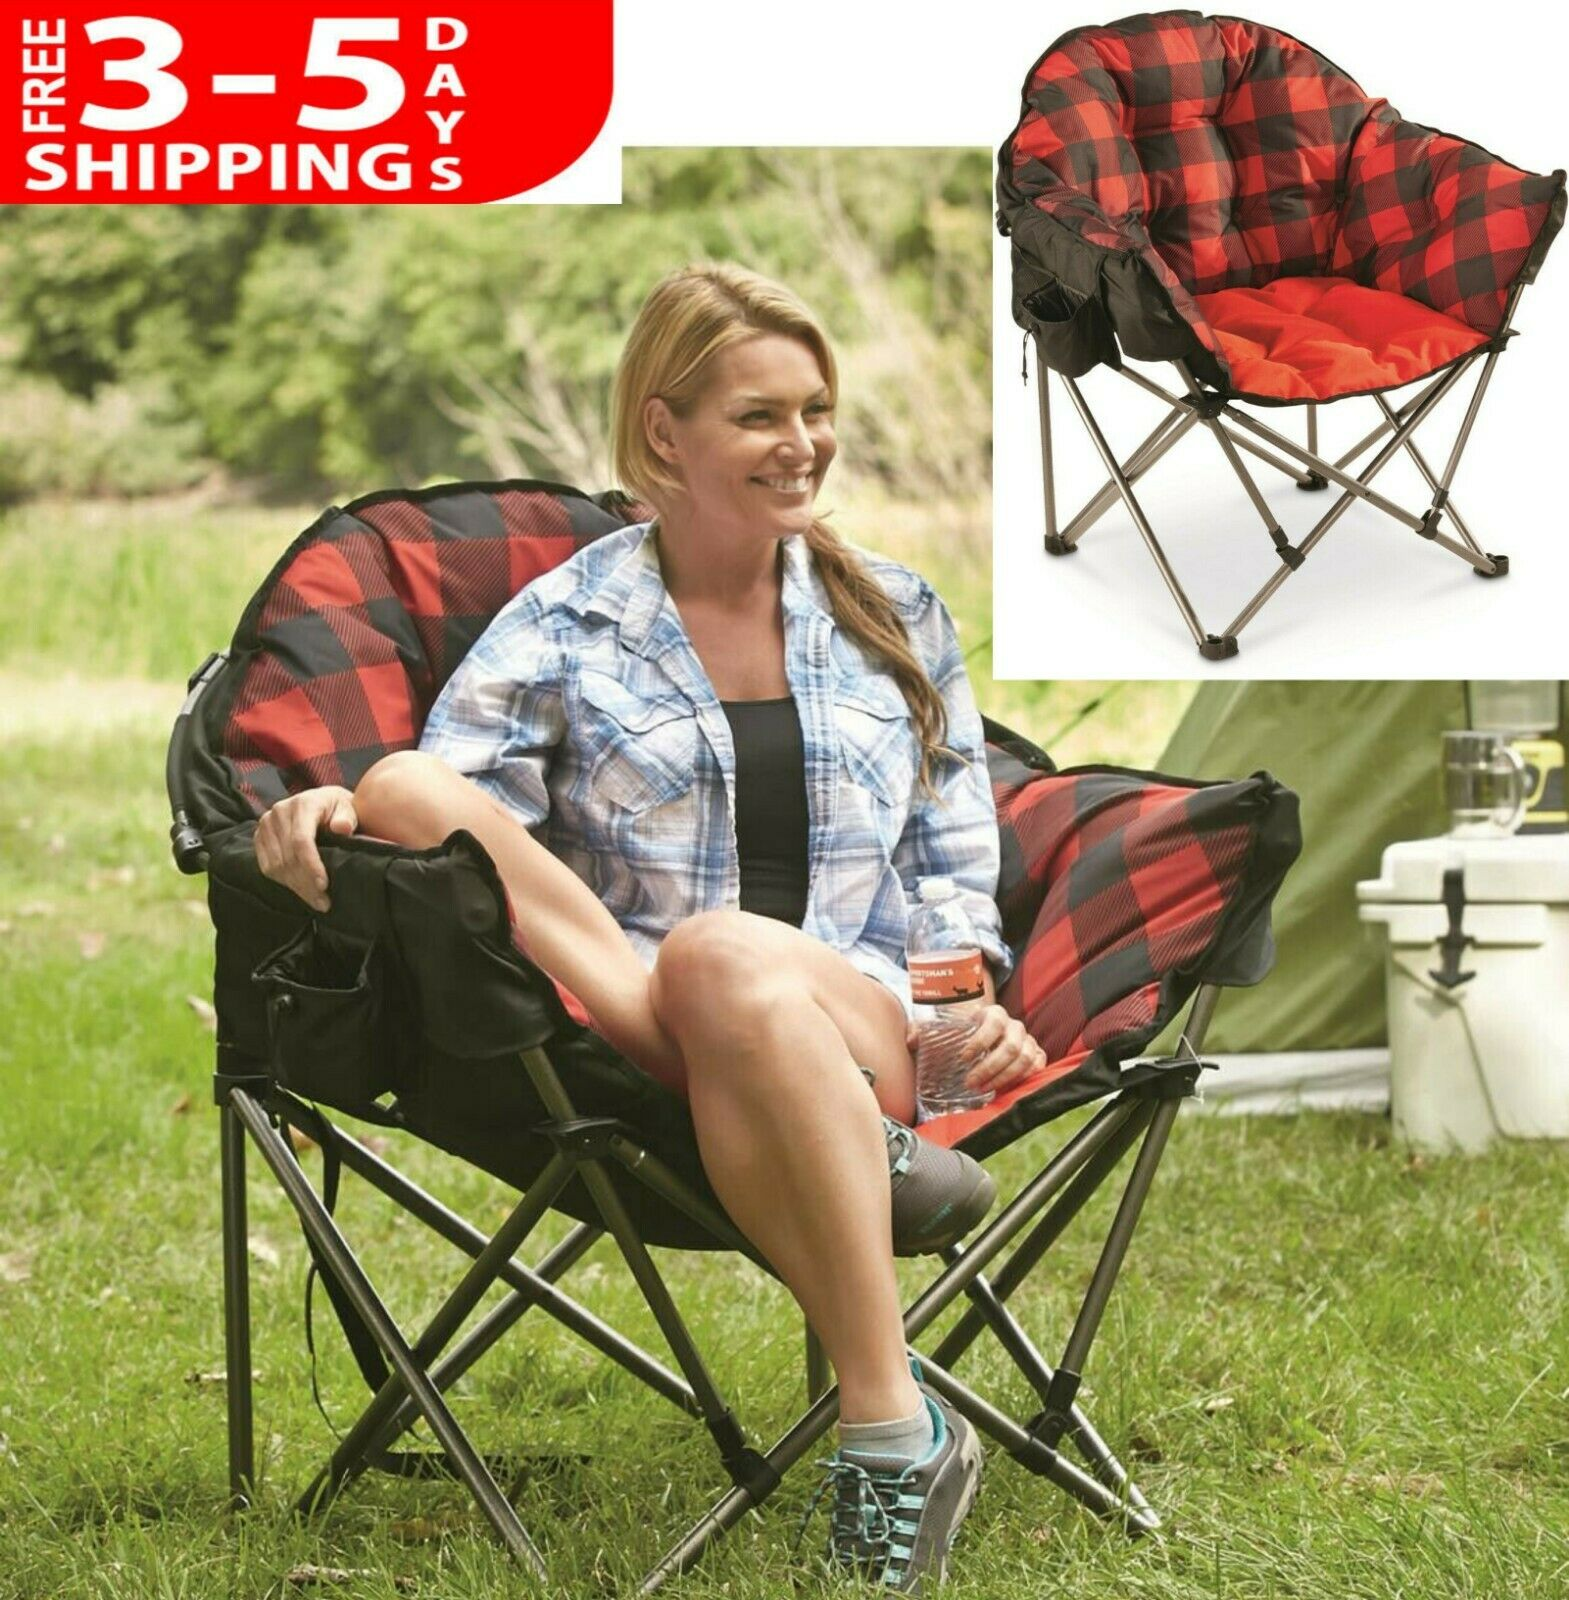 Large Folding Oversized Travel Foldable Camp Camping Chair Seat w Carry Bag